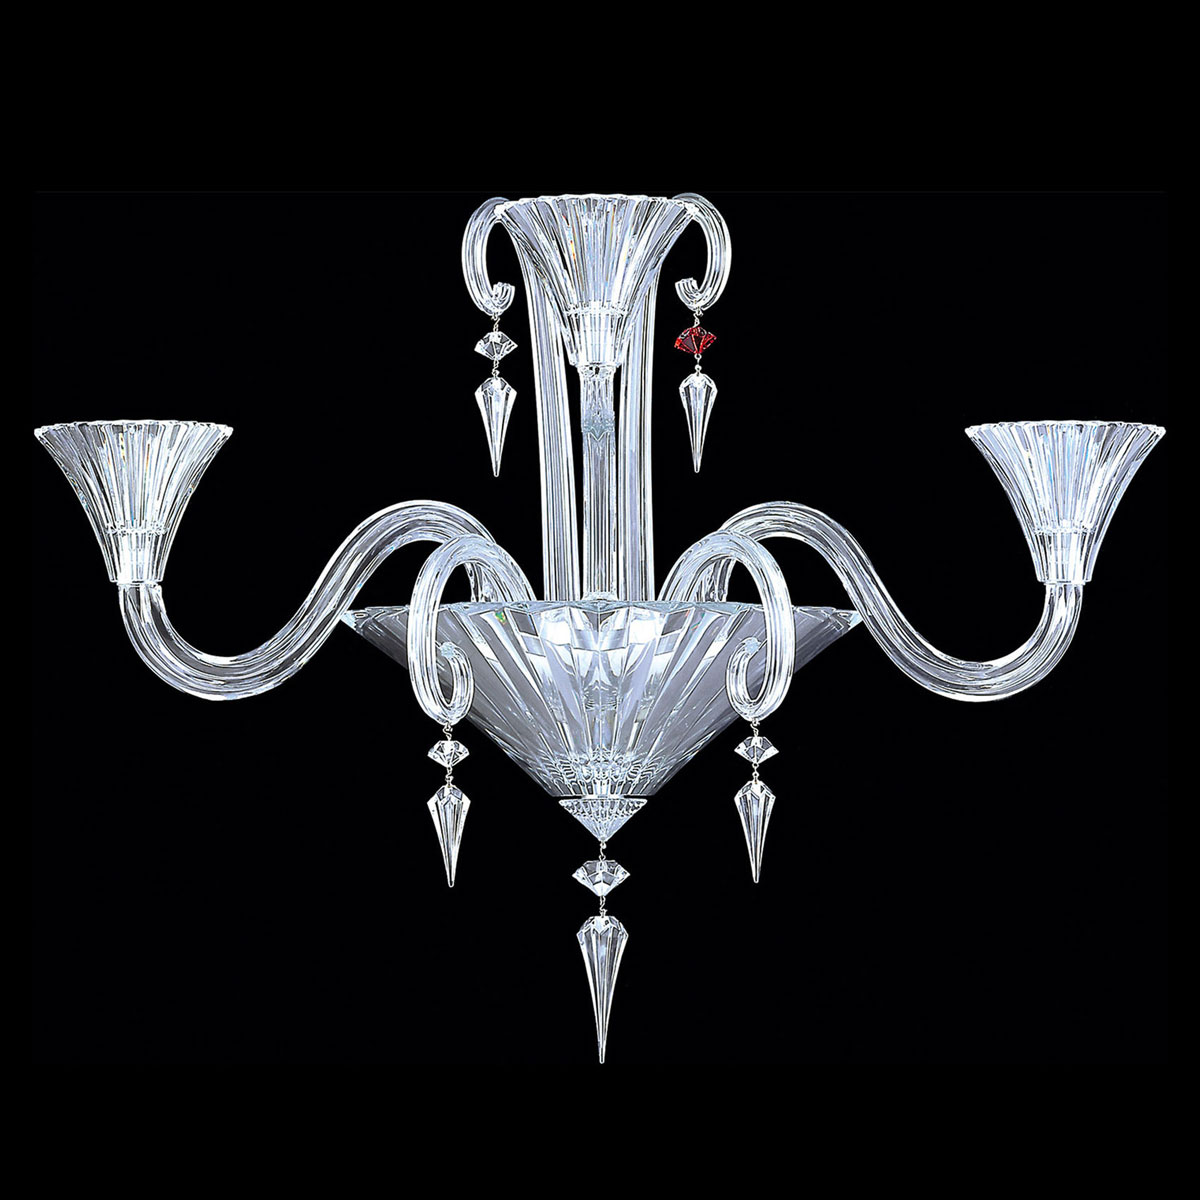 Baccarat Crystal, Mille Nuits 3 Light Wall Crystal Sconce